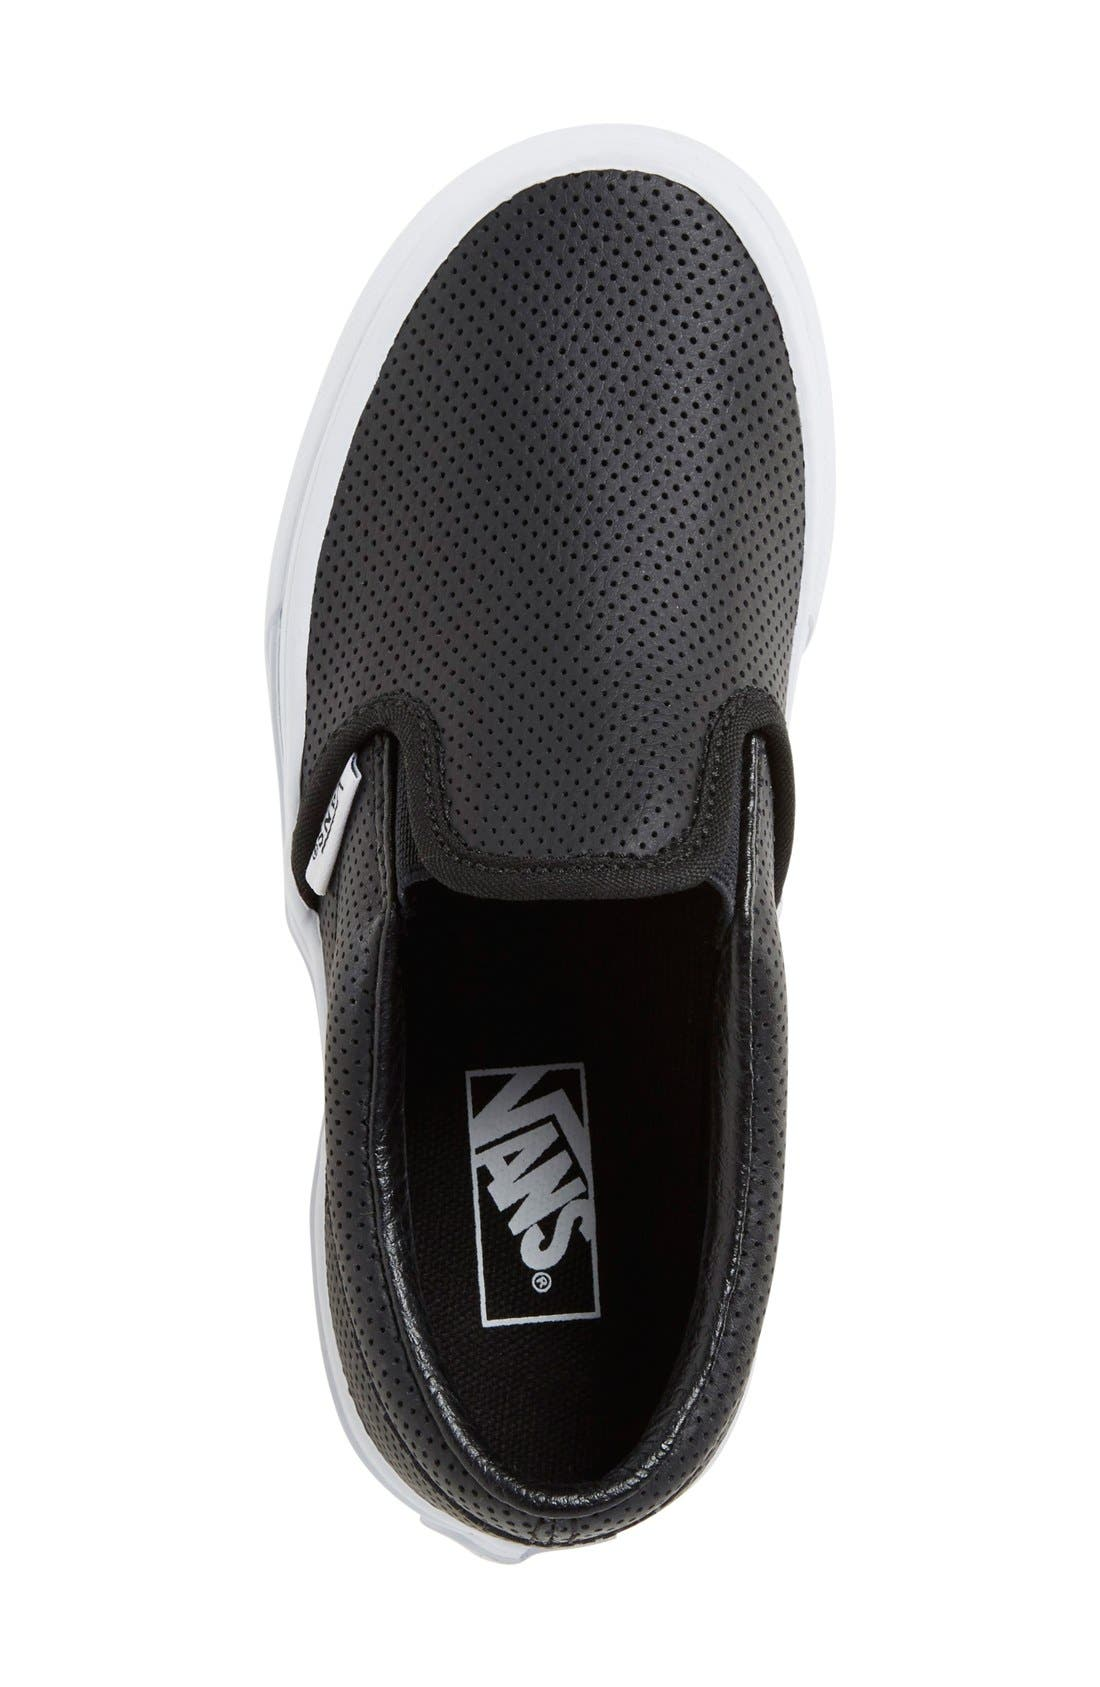 VANS, 'Classic' Slip-On Sneaker, Alternate thumbnail 3, color, BLACK LEATHER